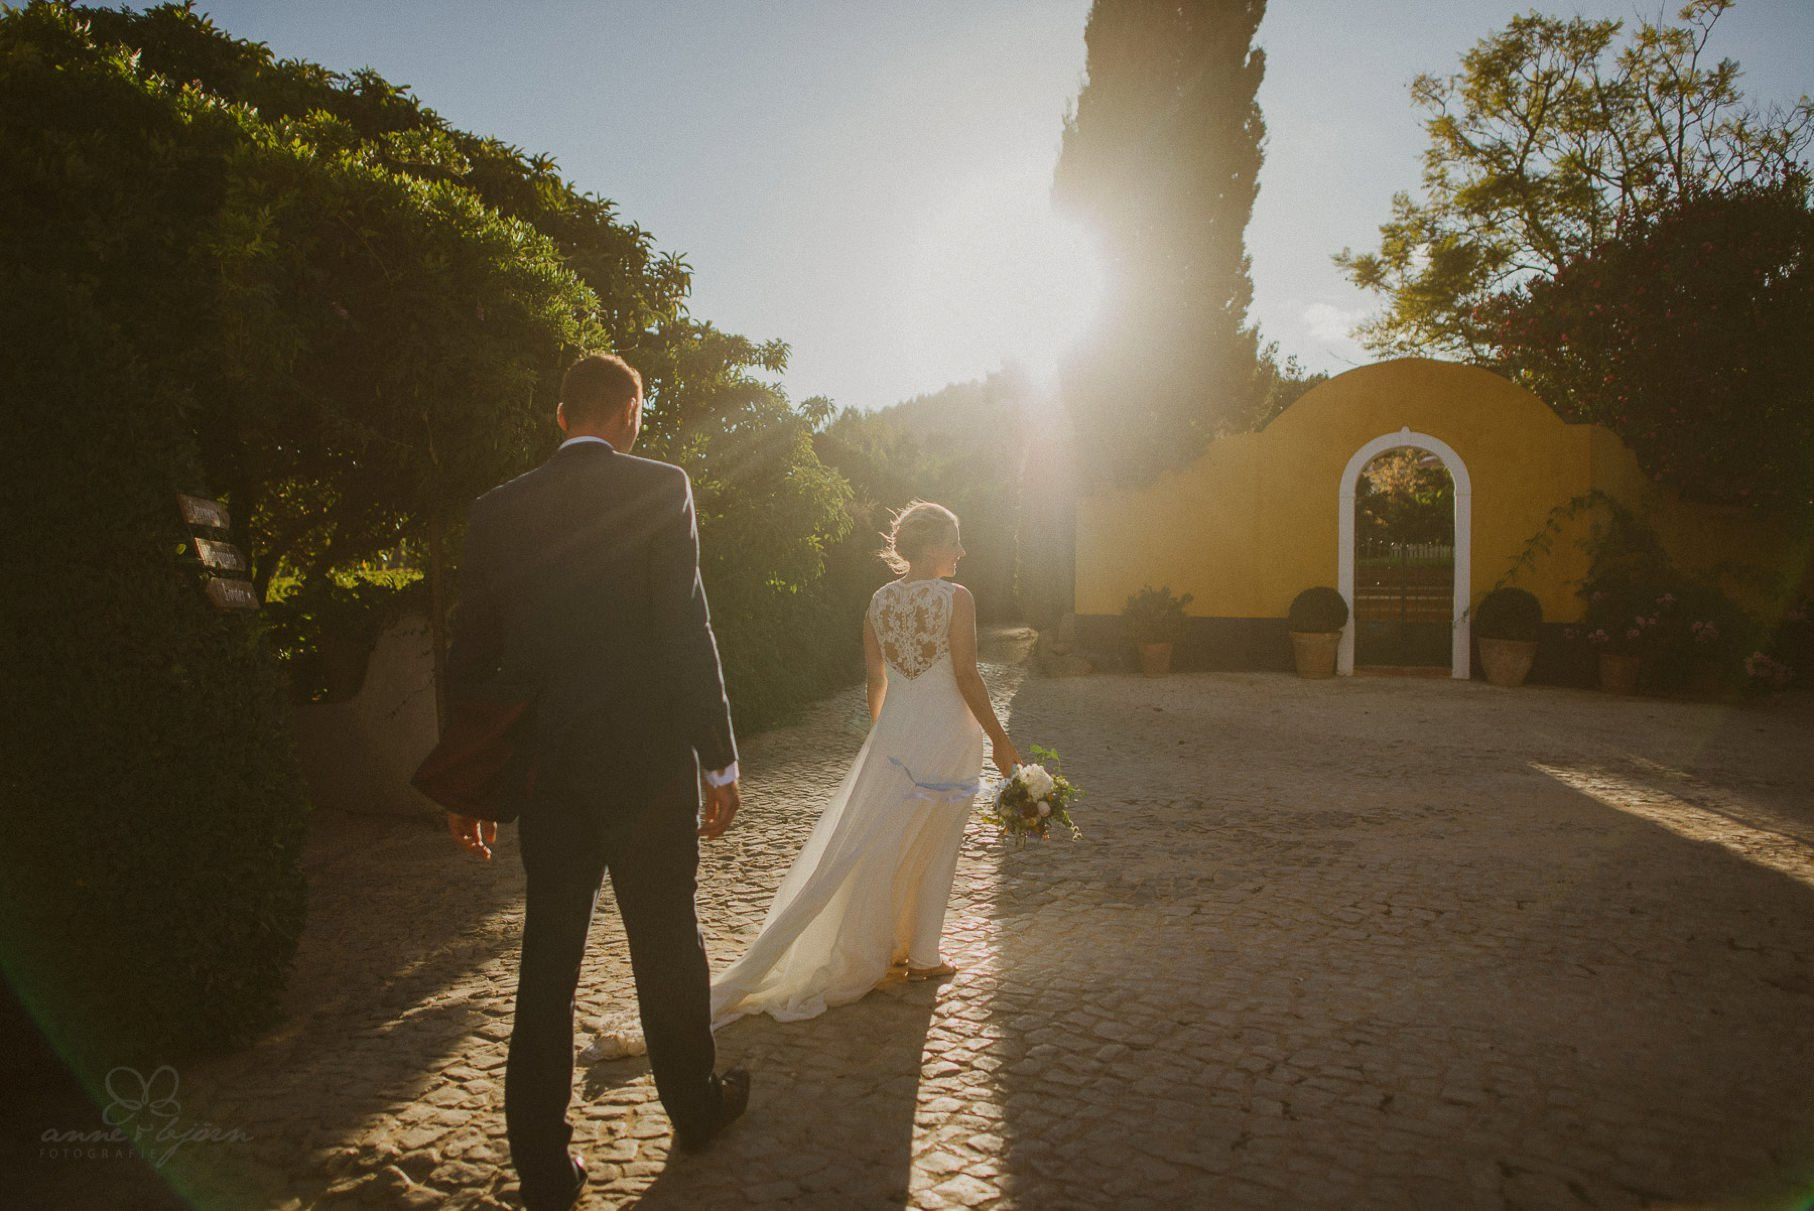 0086 anna olli portugal destination wedding dsc 7159 - Hochzeit in Portugal - Quinta de Santa´Ana